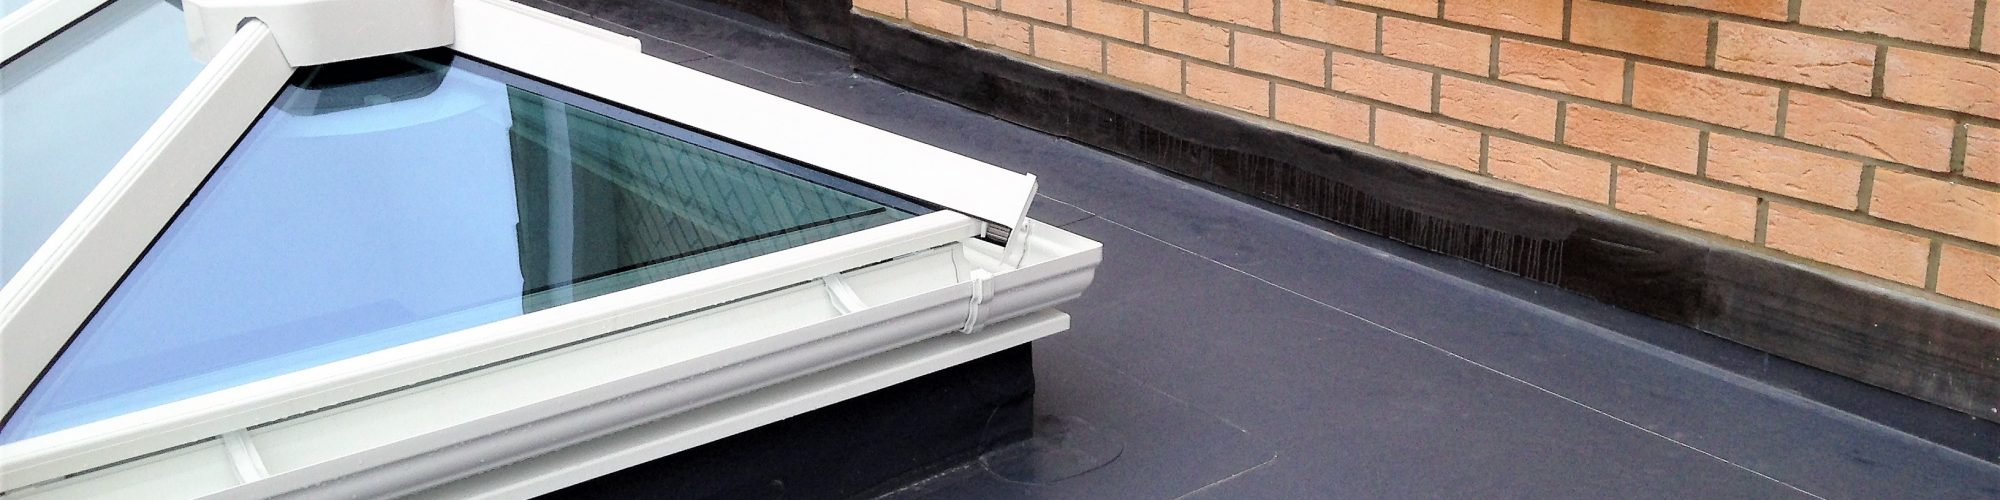 Single-Ply Rubber Flat Roofing